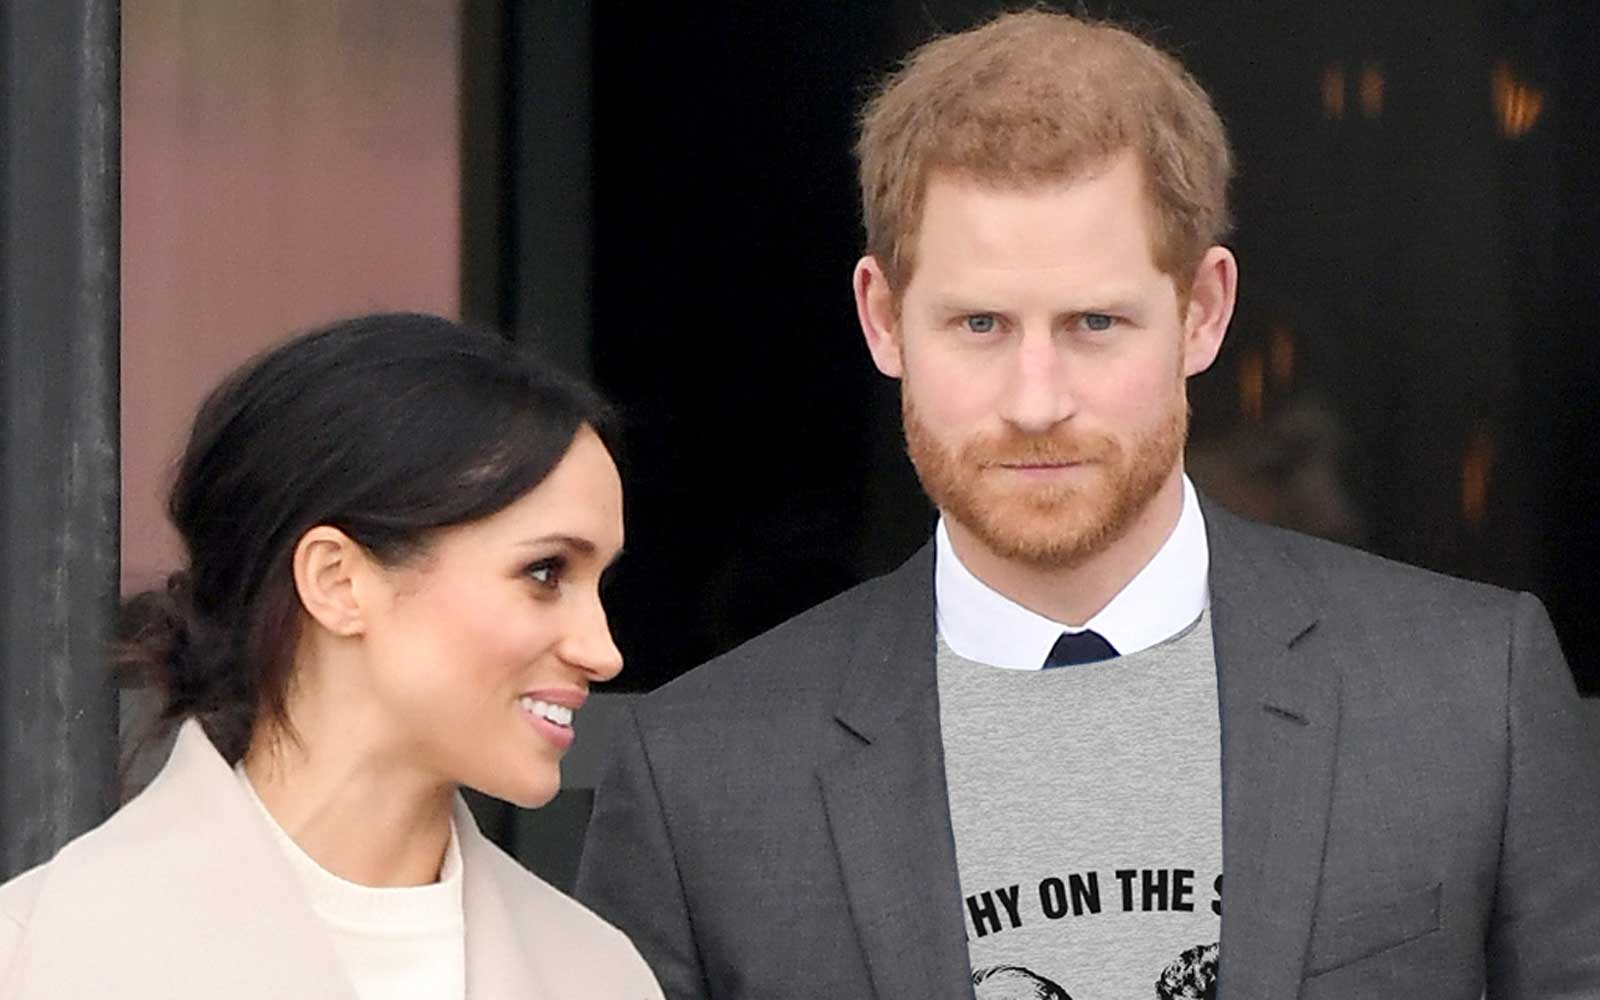 Meghan Markle May Have Instagrammed Prince Harry in an Amazing 'Golden Girls' Sweatshirt